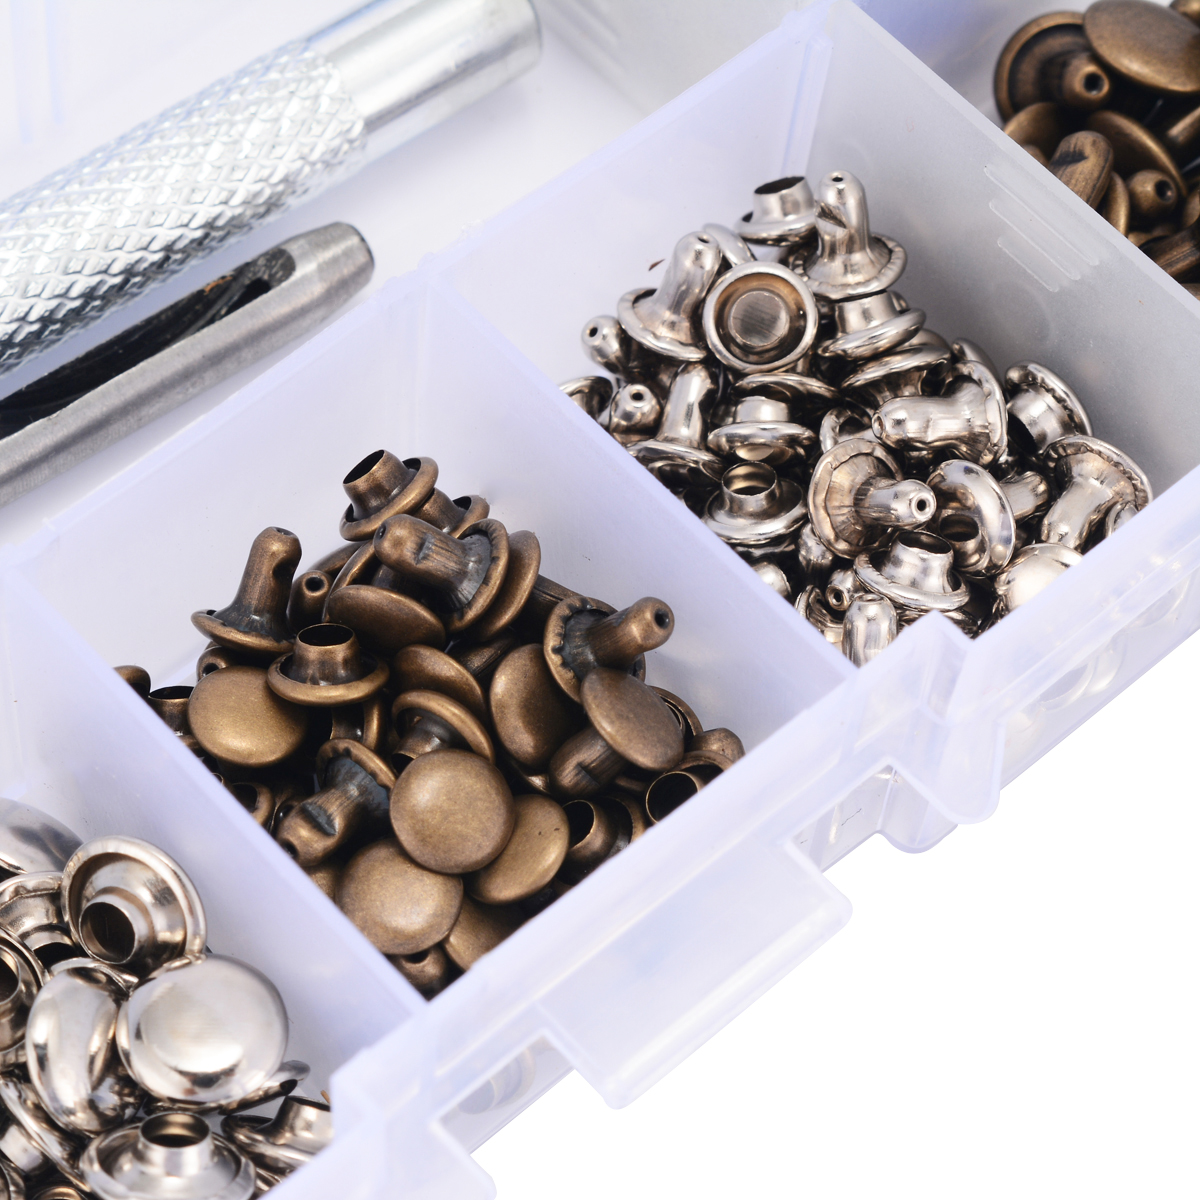 120 Set Silver + Bronze Rivets DIY Crafts Leather Repairing Rivets Tubular Metal Single with Fixing Tool Kit with Storage Box